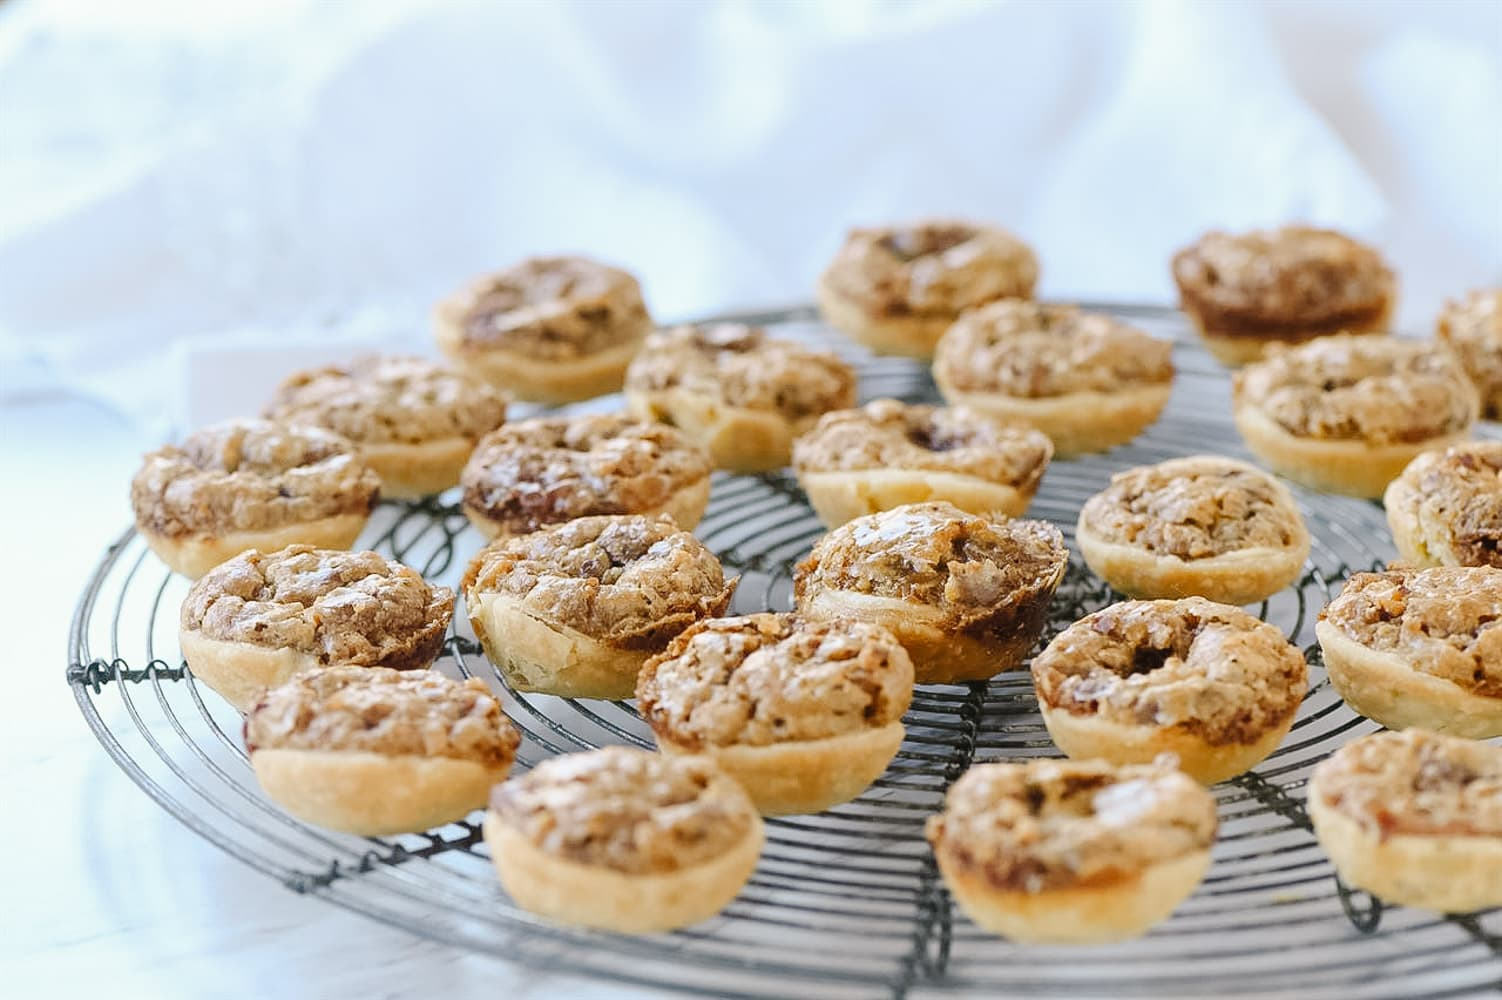 pecan tassies on a cooling rack.